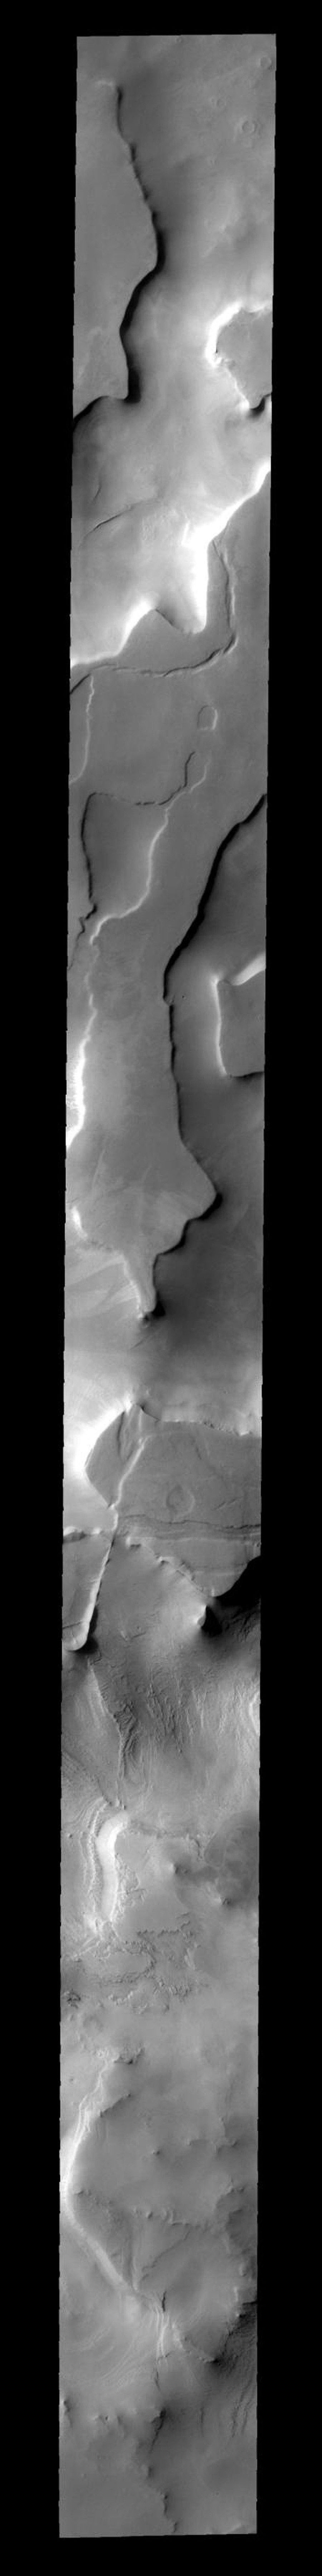 This region of plateaus near the south polar cap is called Cavi Angusti on Mars, taken by NASA's Mars 2001 Odyssey spacecraft.